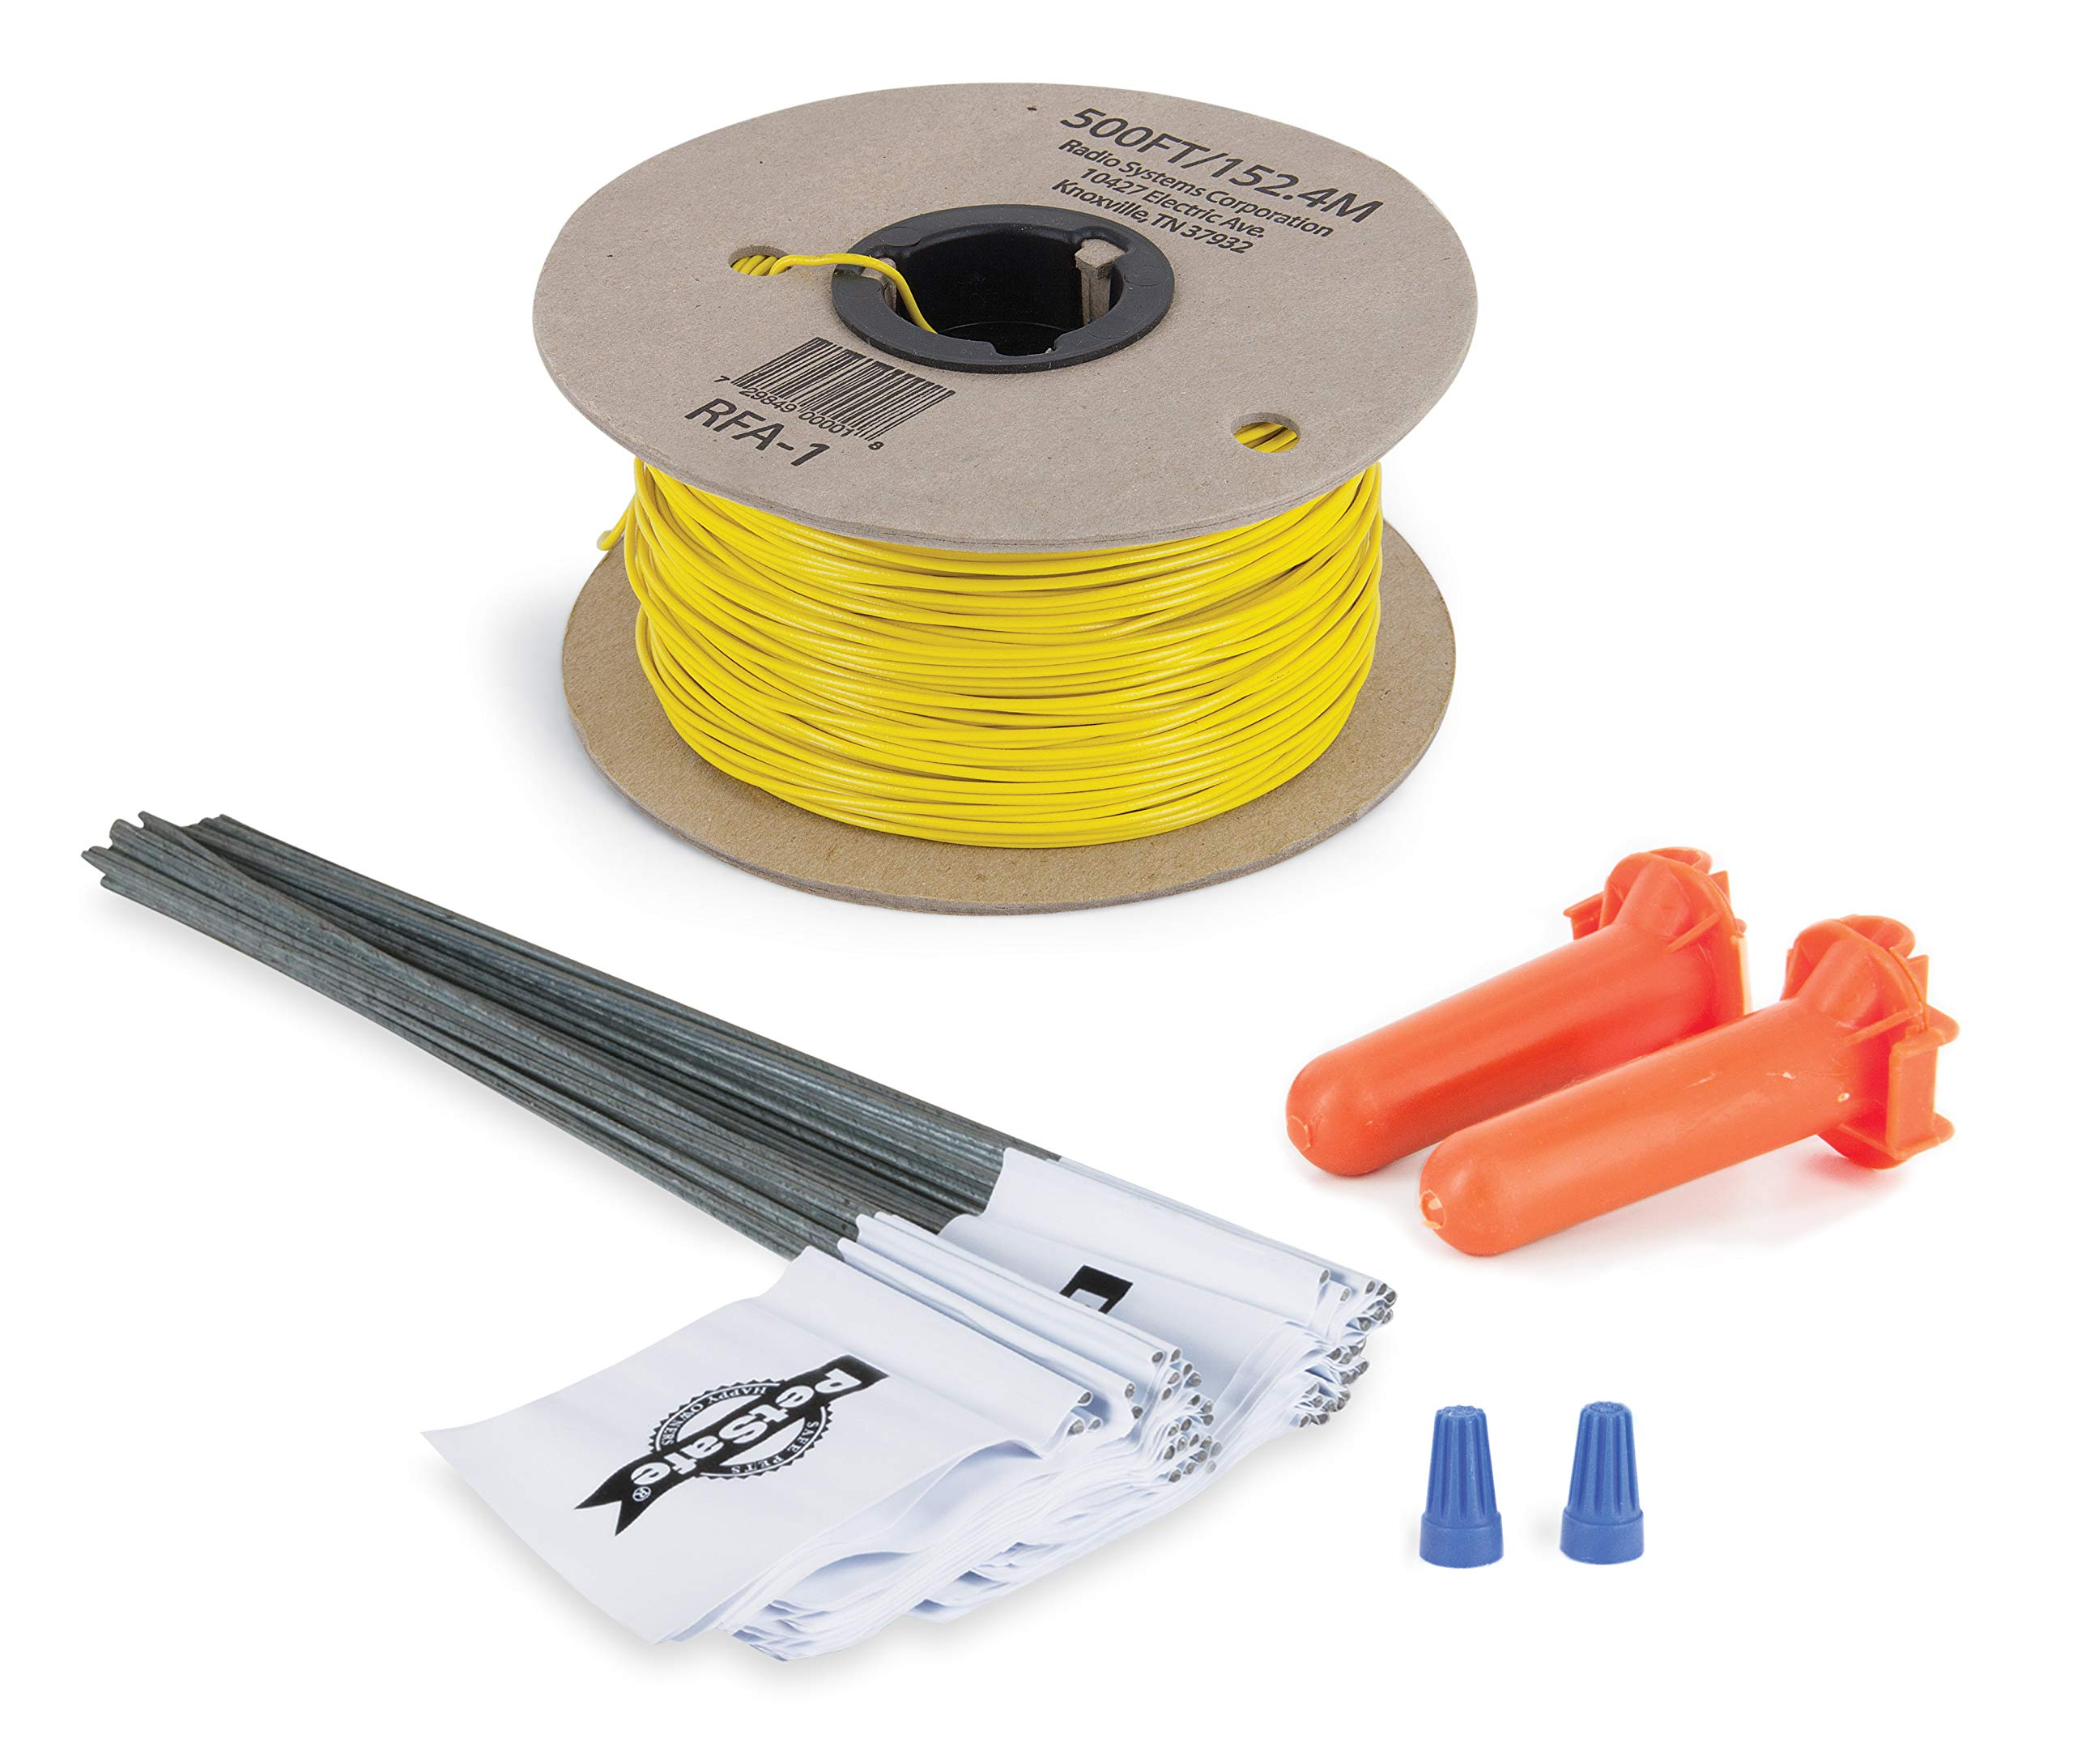 PetSafe Fence Wire and Flag Kit, Includes 50 boundary Flags and 500 ft of Wire, Expand your In-Ground Fence by PetSafe